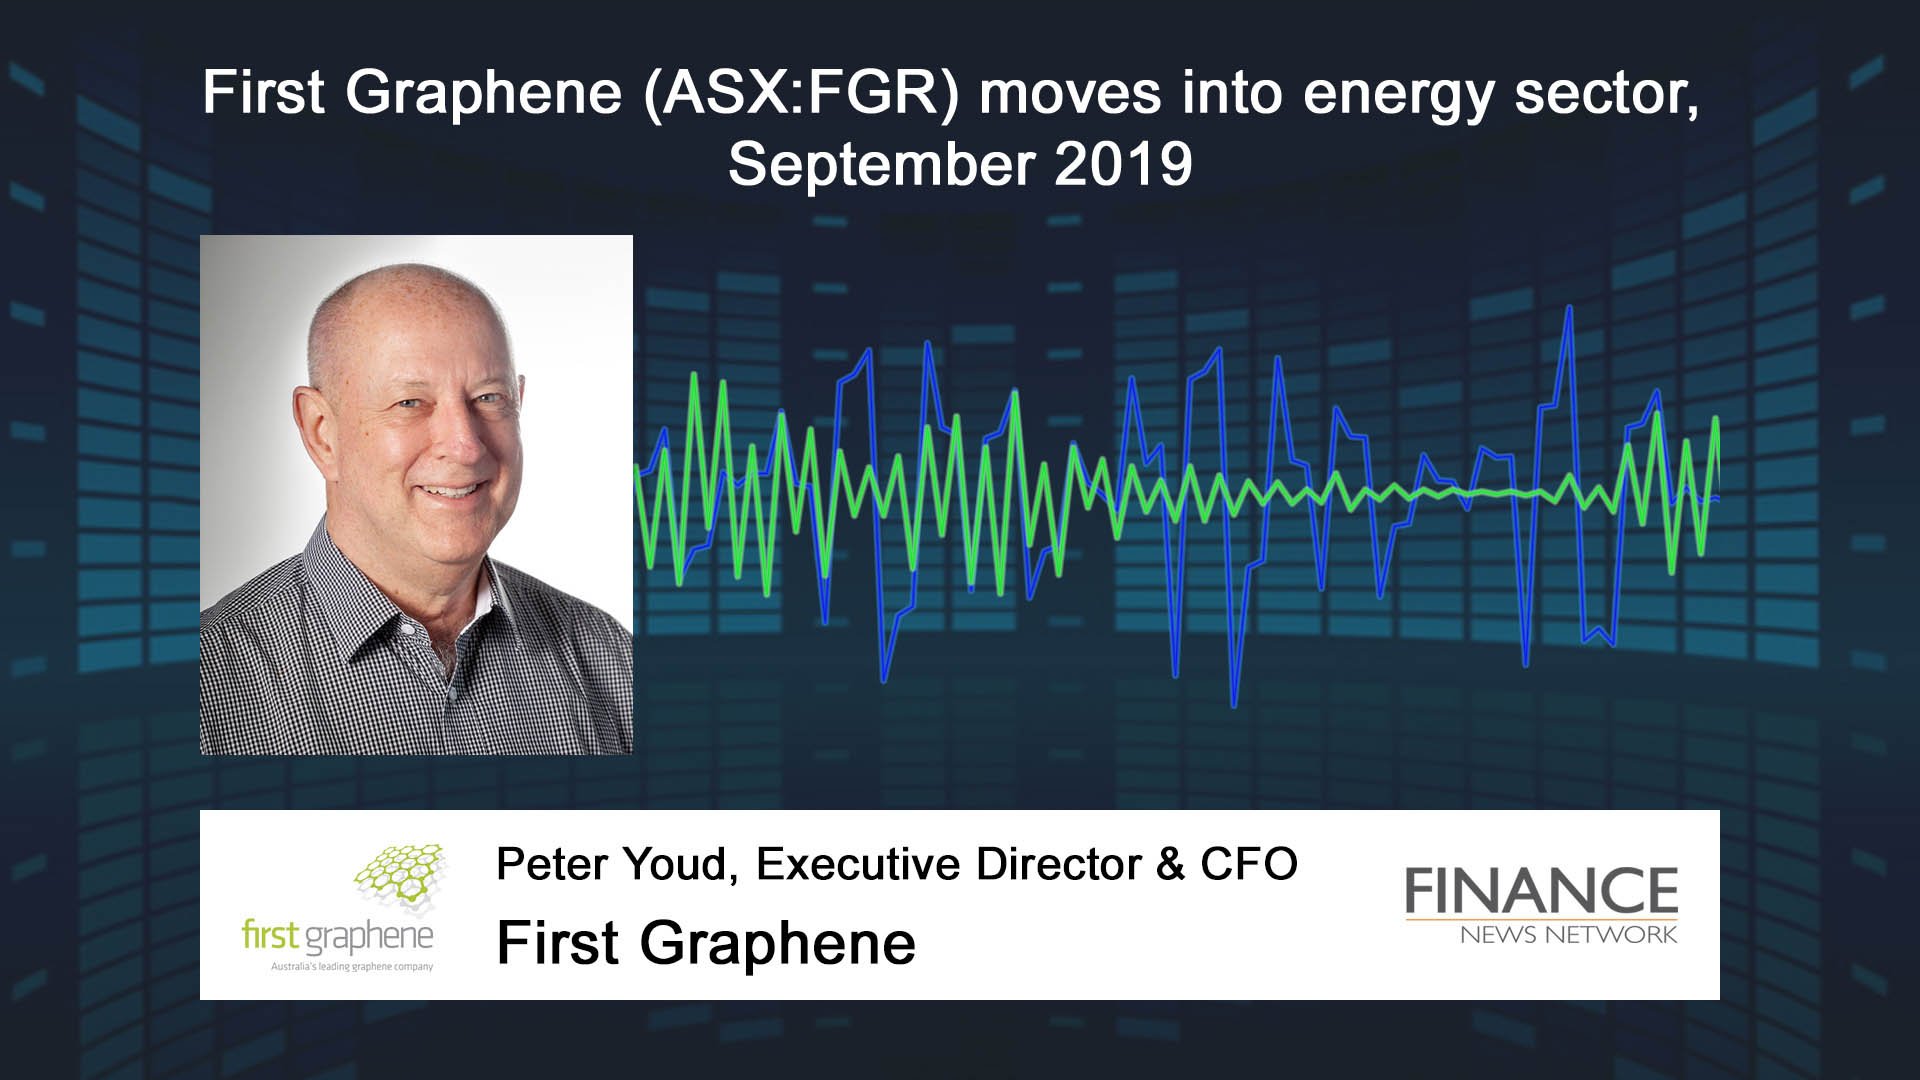 First Graphene (ASX:FGR) moves into energy sector